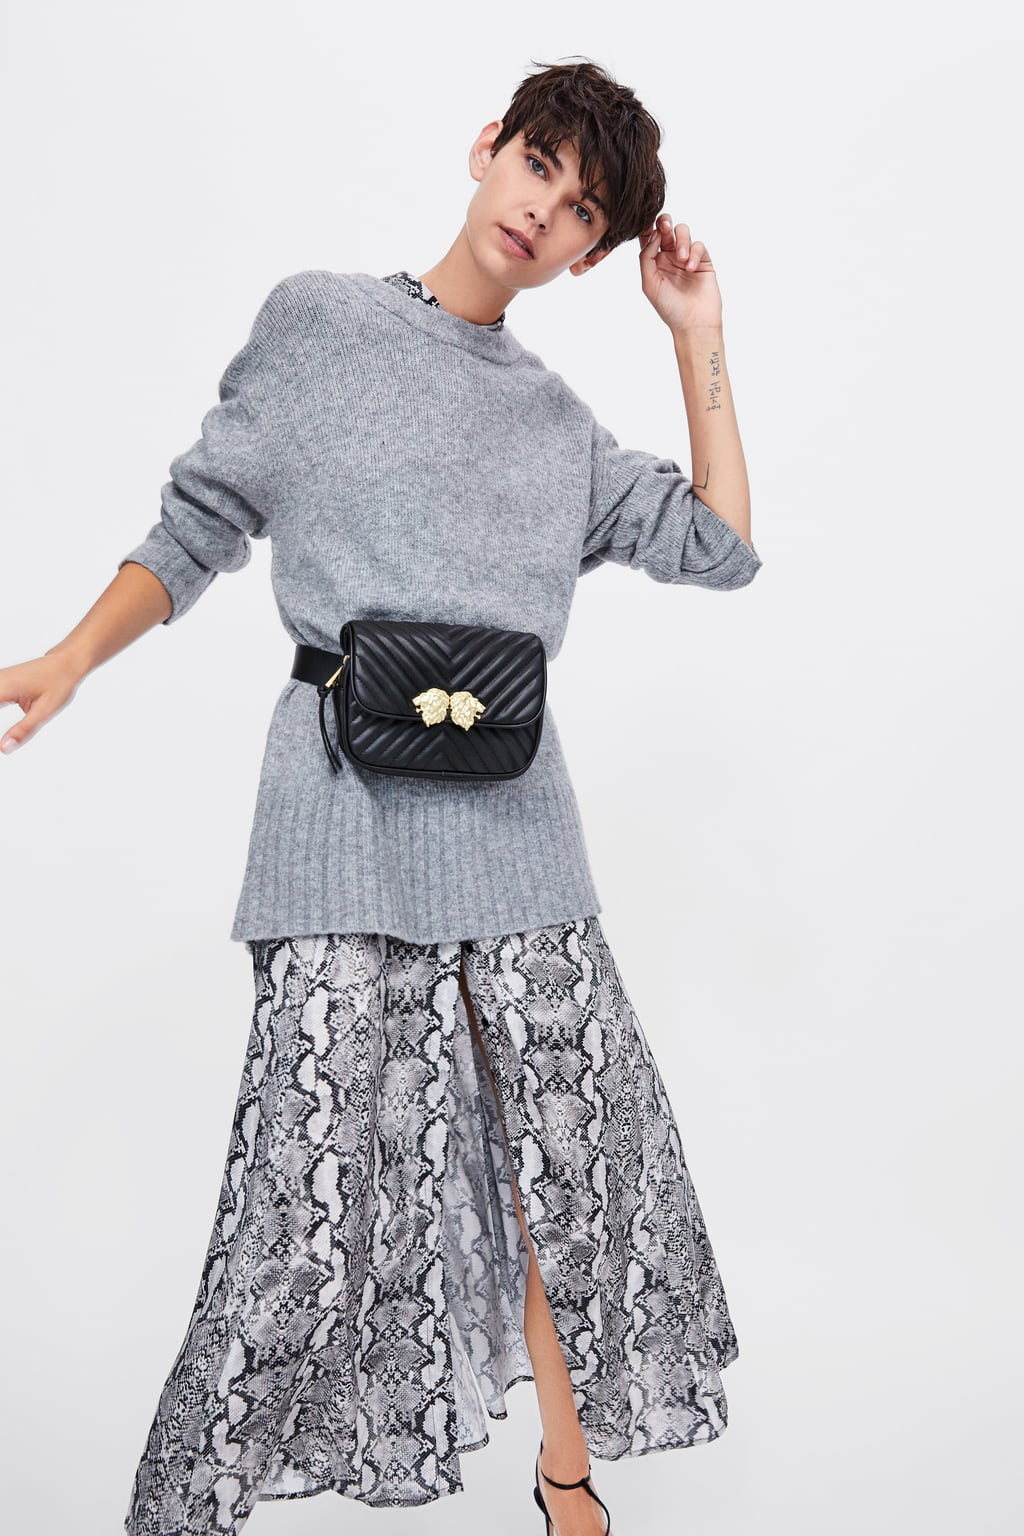 Crossbody Belt Bag With Lionhead Detail  View All Woman Shoes Sale by Zara